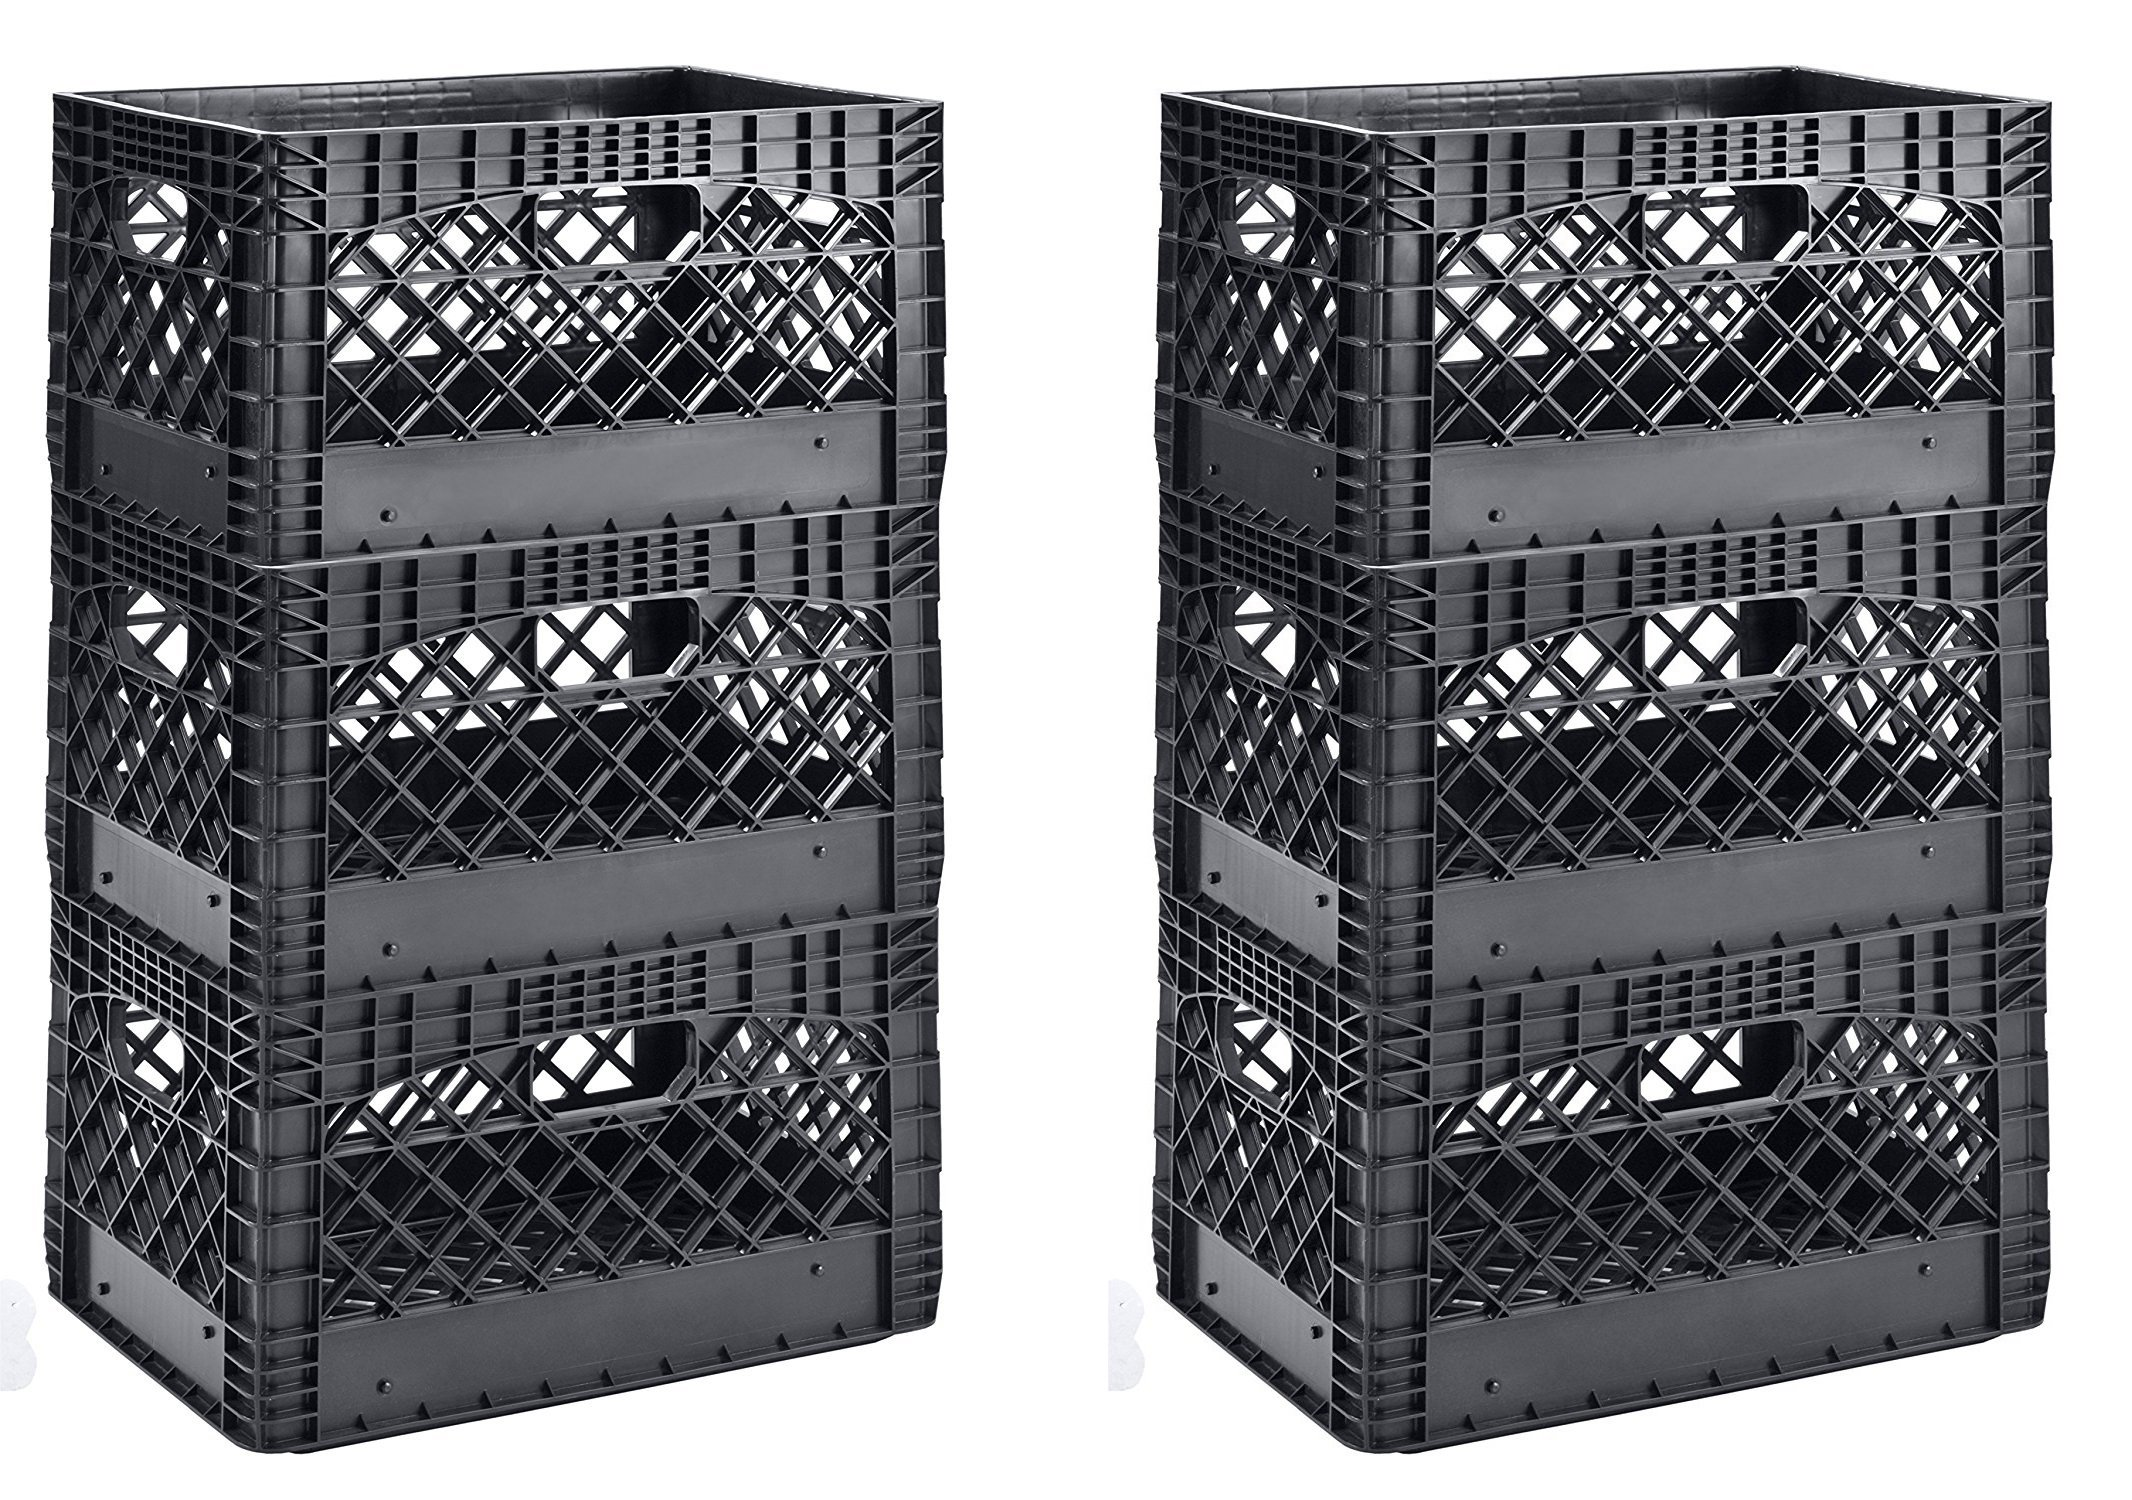 Muscle Rack PMK24QTB-3 24 quart 3 Pack black Heavy Duty Rectangular Stackable Dairy Milk Crates , 11'' Height, 19'' width (2 X 3 Pack)